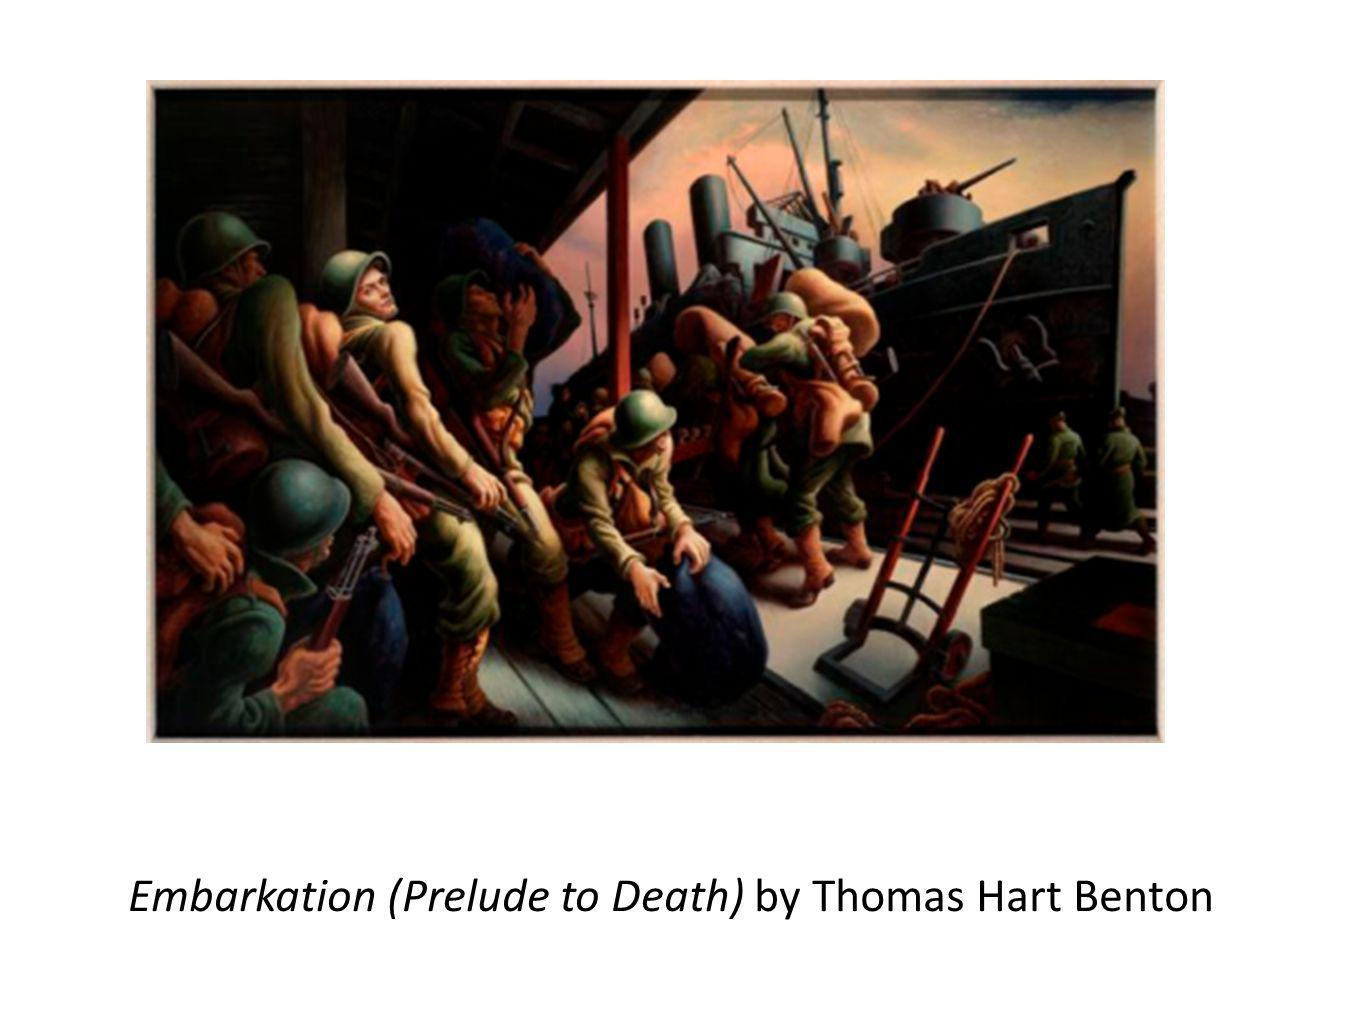 Embarkation (Prelude to Death) by Thomas Hart Benton